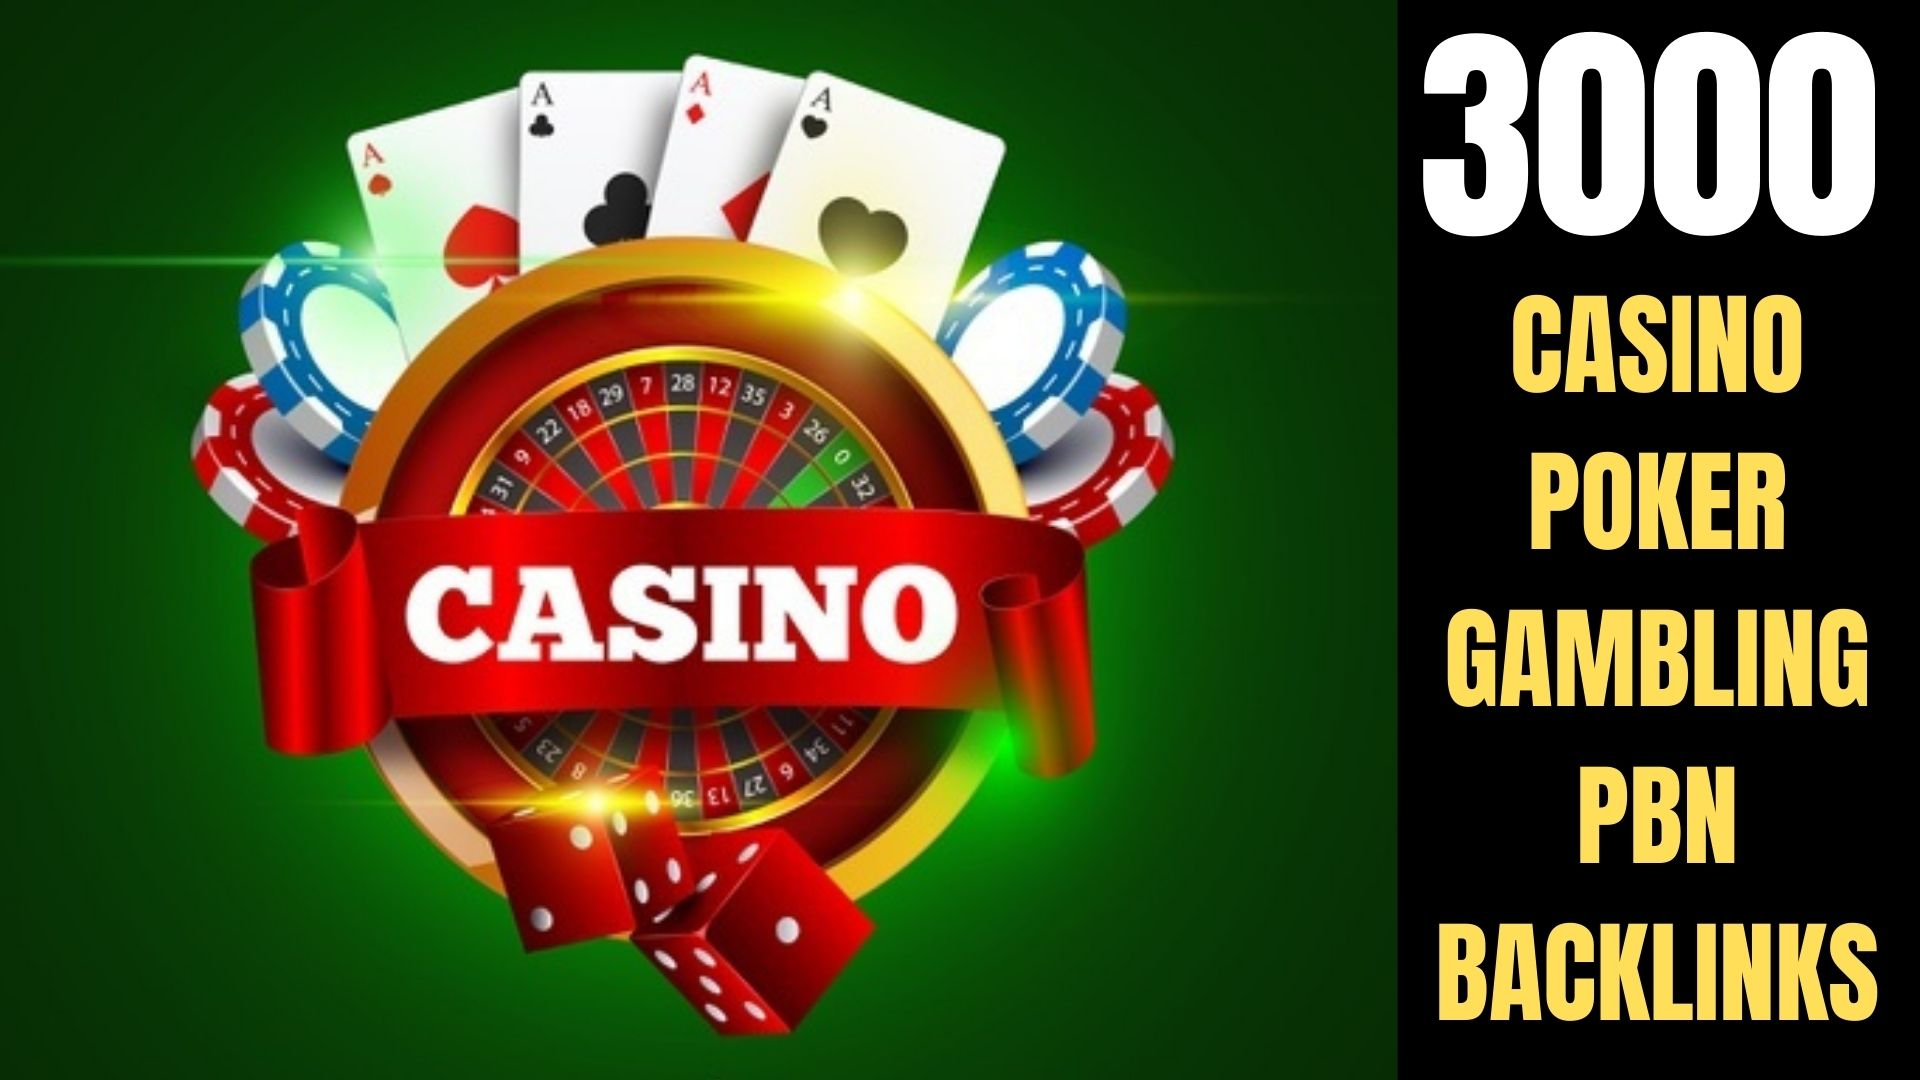 buy one get free one 3000+ permanent pbn Casino,  Gambling,  Poker,  Sports judi related unique site